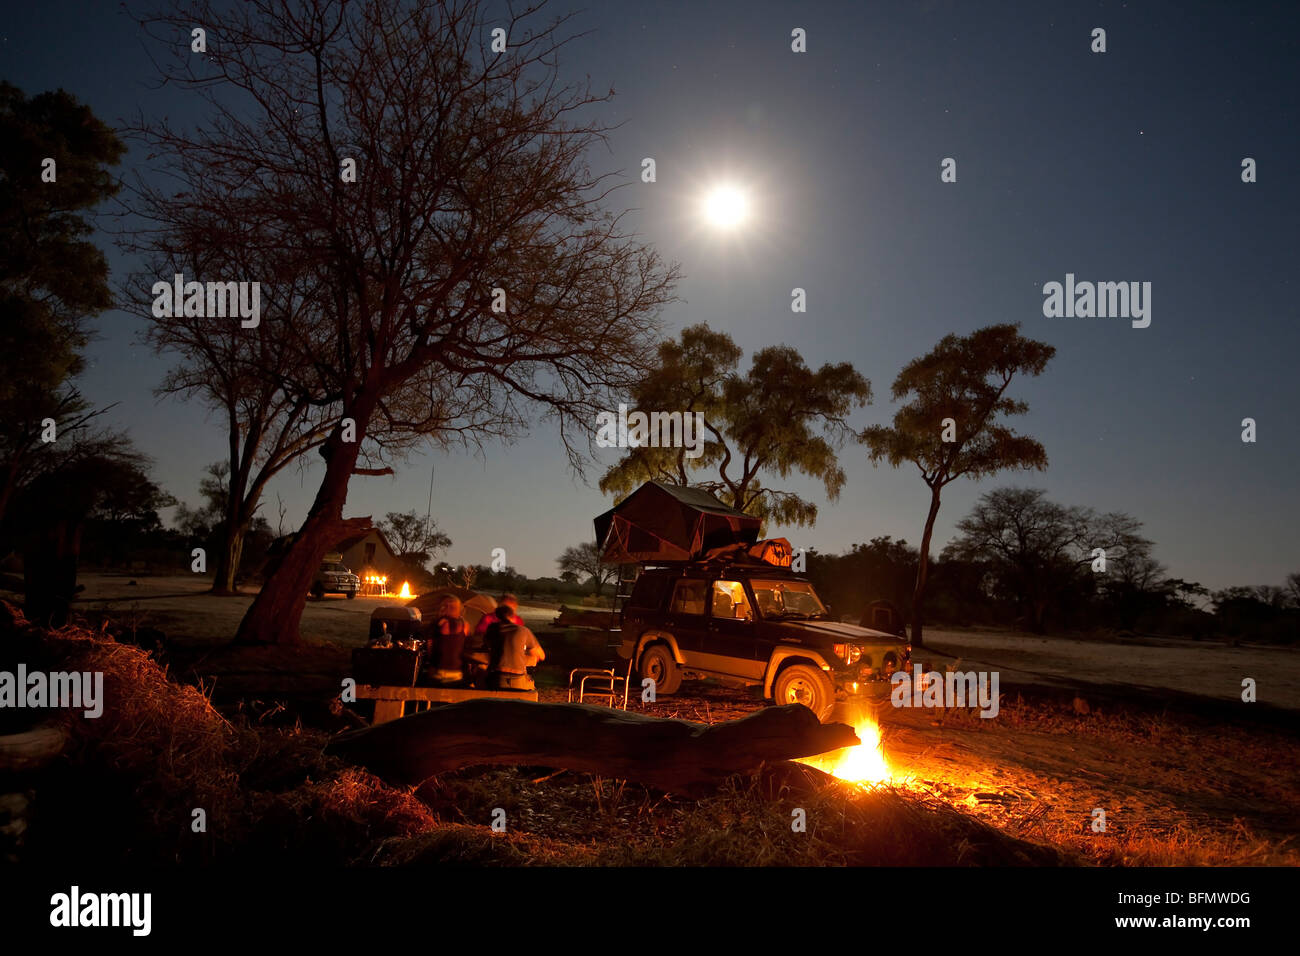 Botswana, Savuti. A family enjoys their meal by the fire, with the expedition 4x4 in the background. Stock Photo